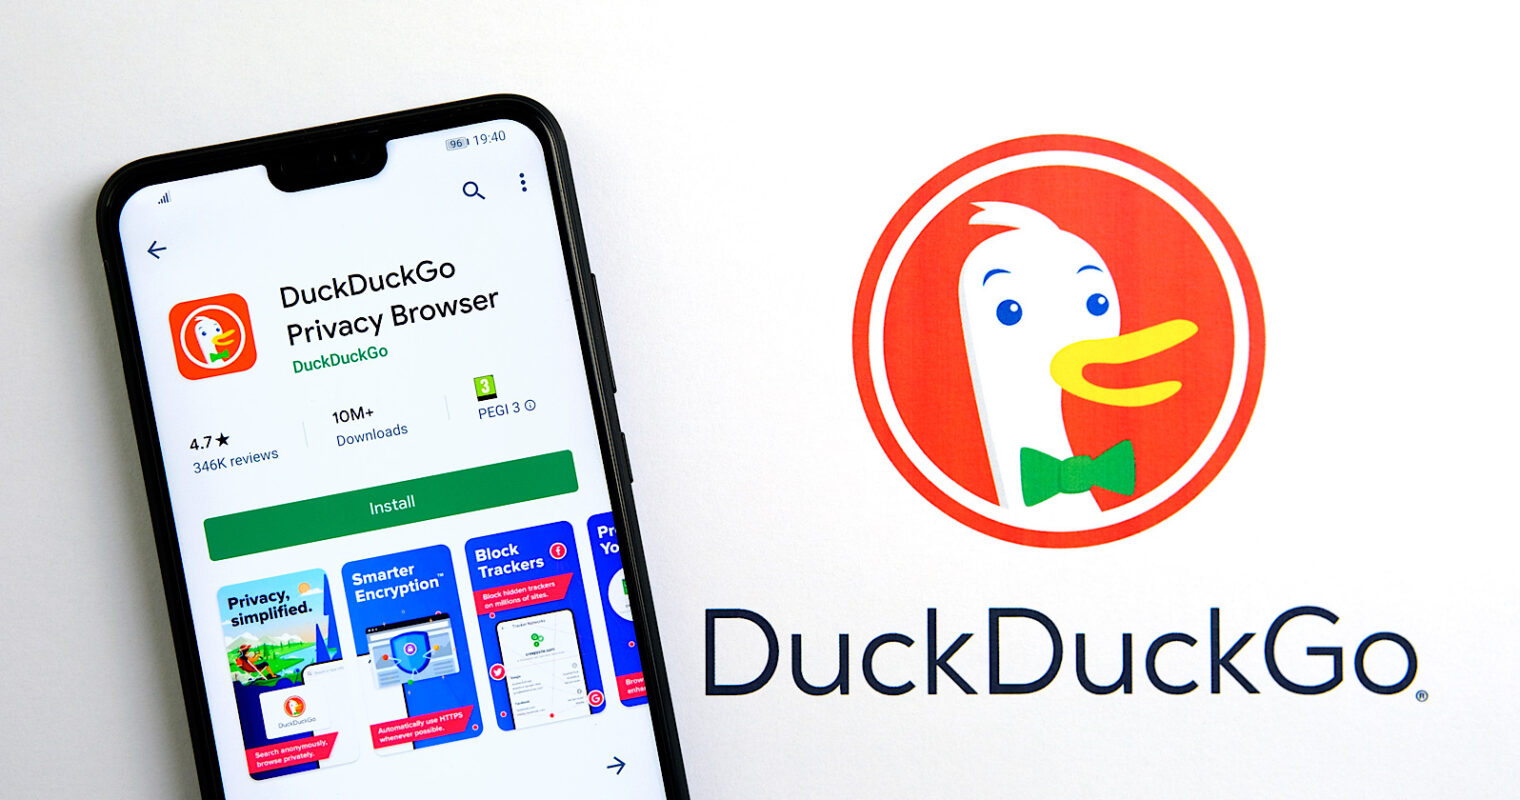 DuckDuckGo Hits New Record: 100 Million Searches Per Day